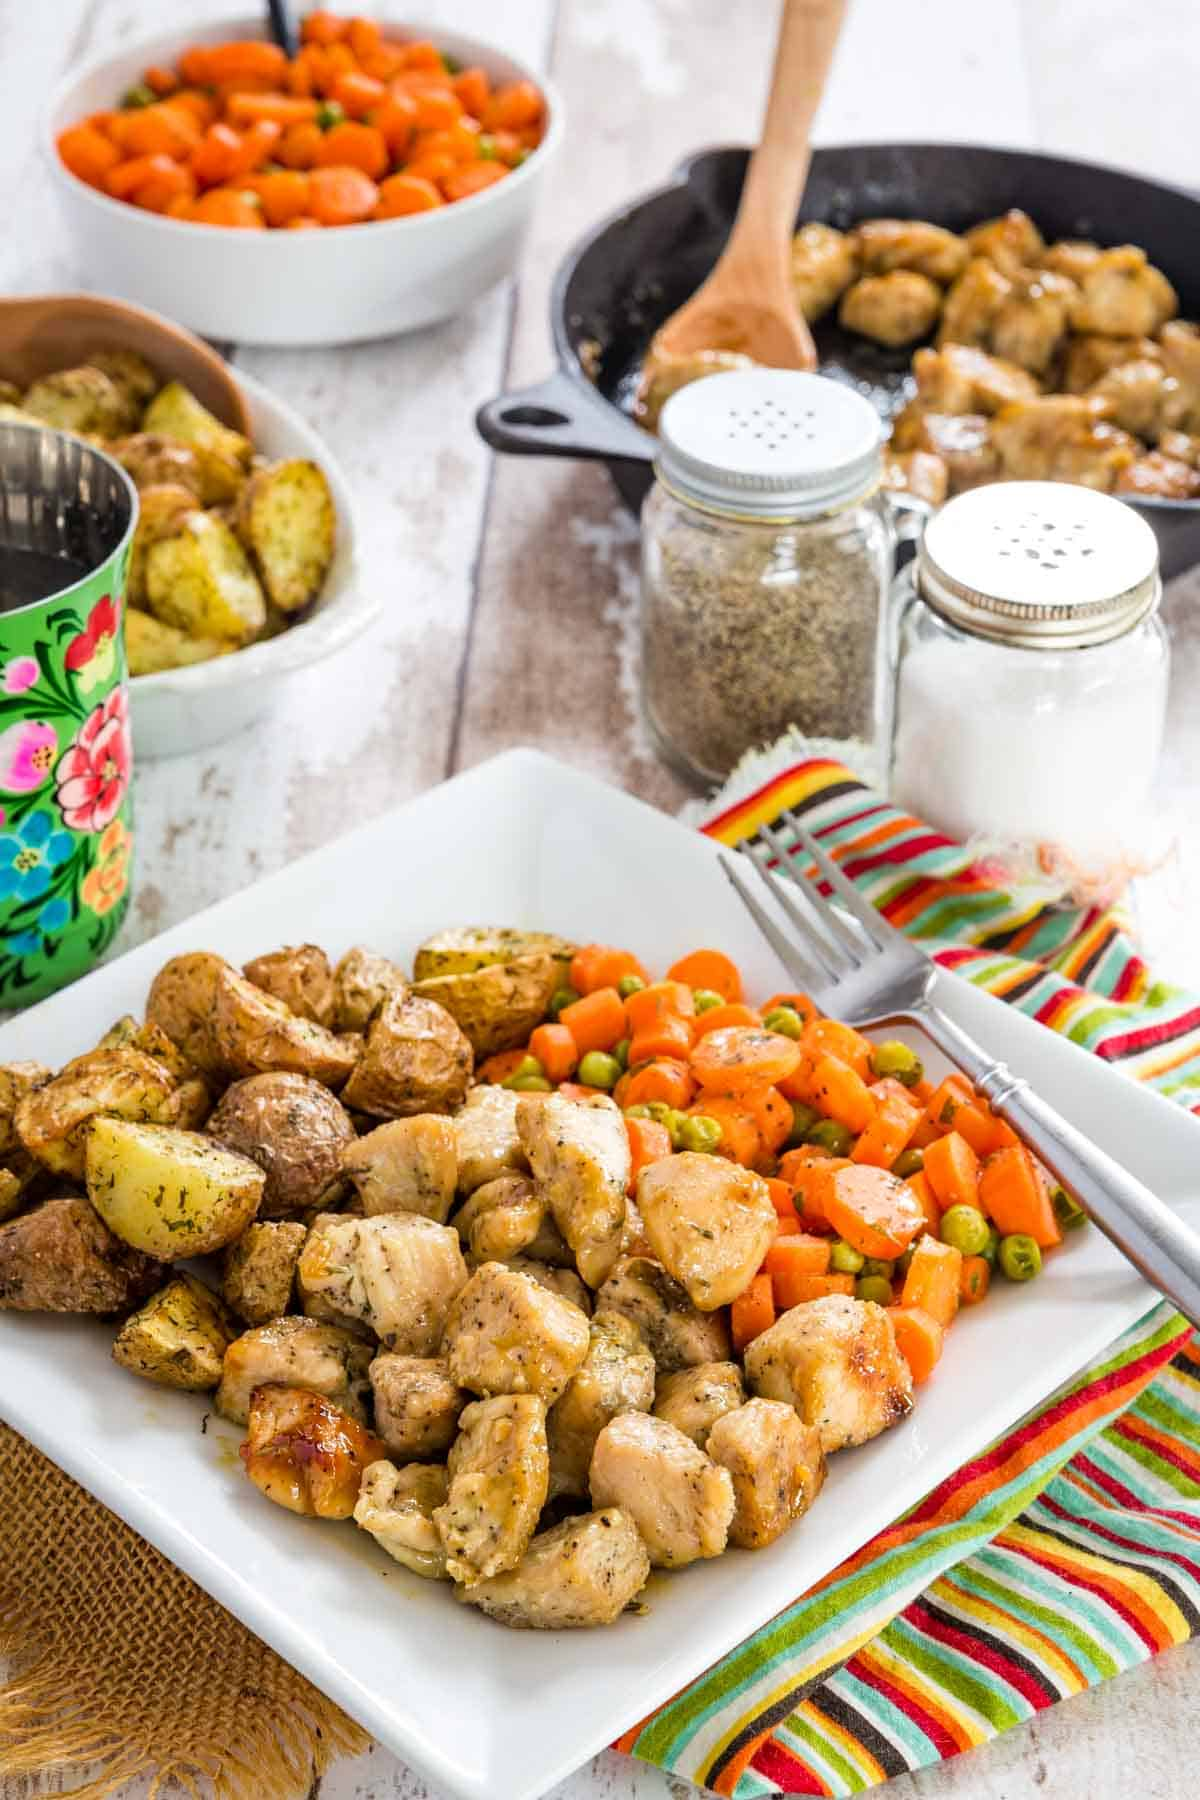 a square white plate with glazed chicken bites roasted potatoes, and peas and carrots on a table with salt and pepper shakers and each of the dishes in serving bowls